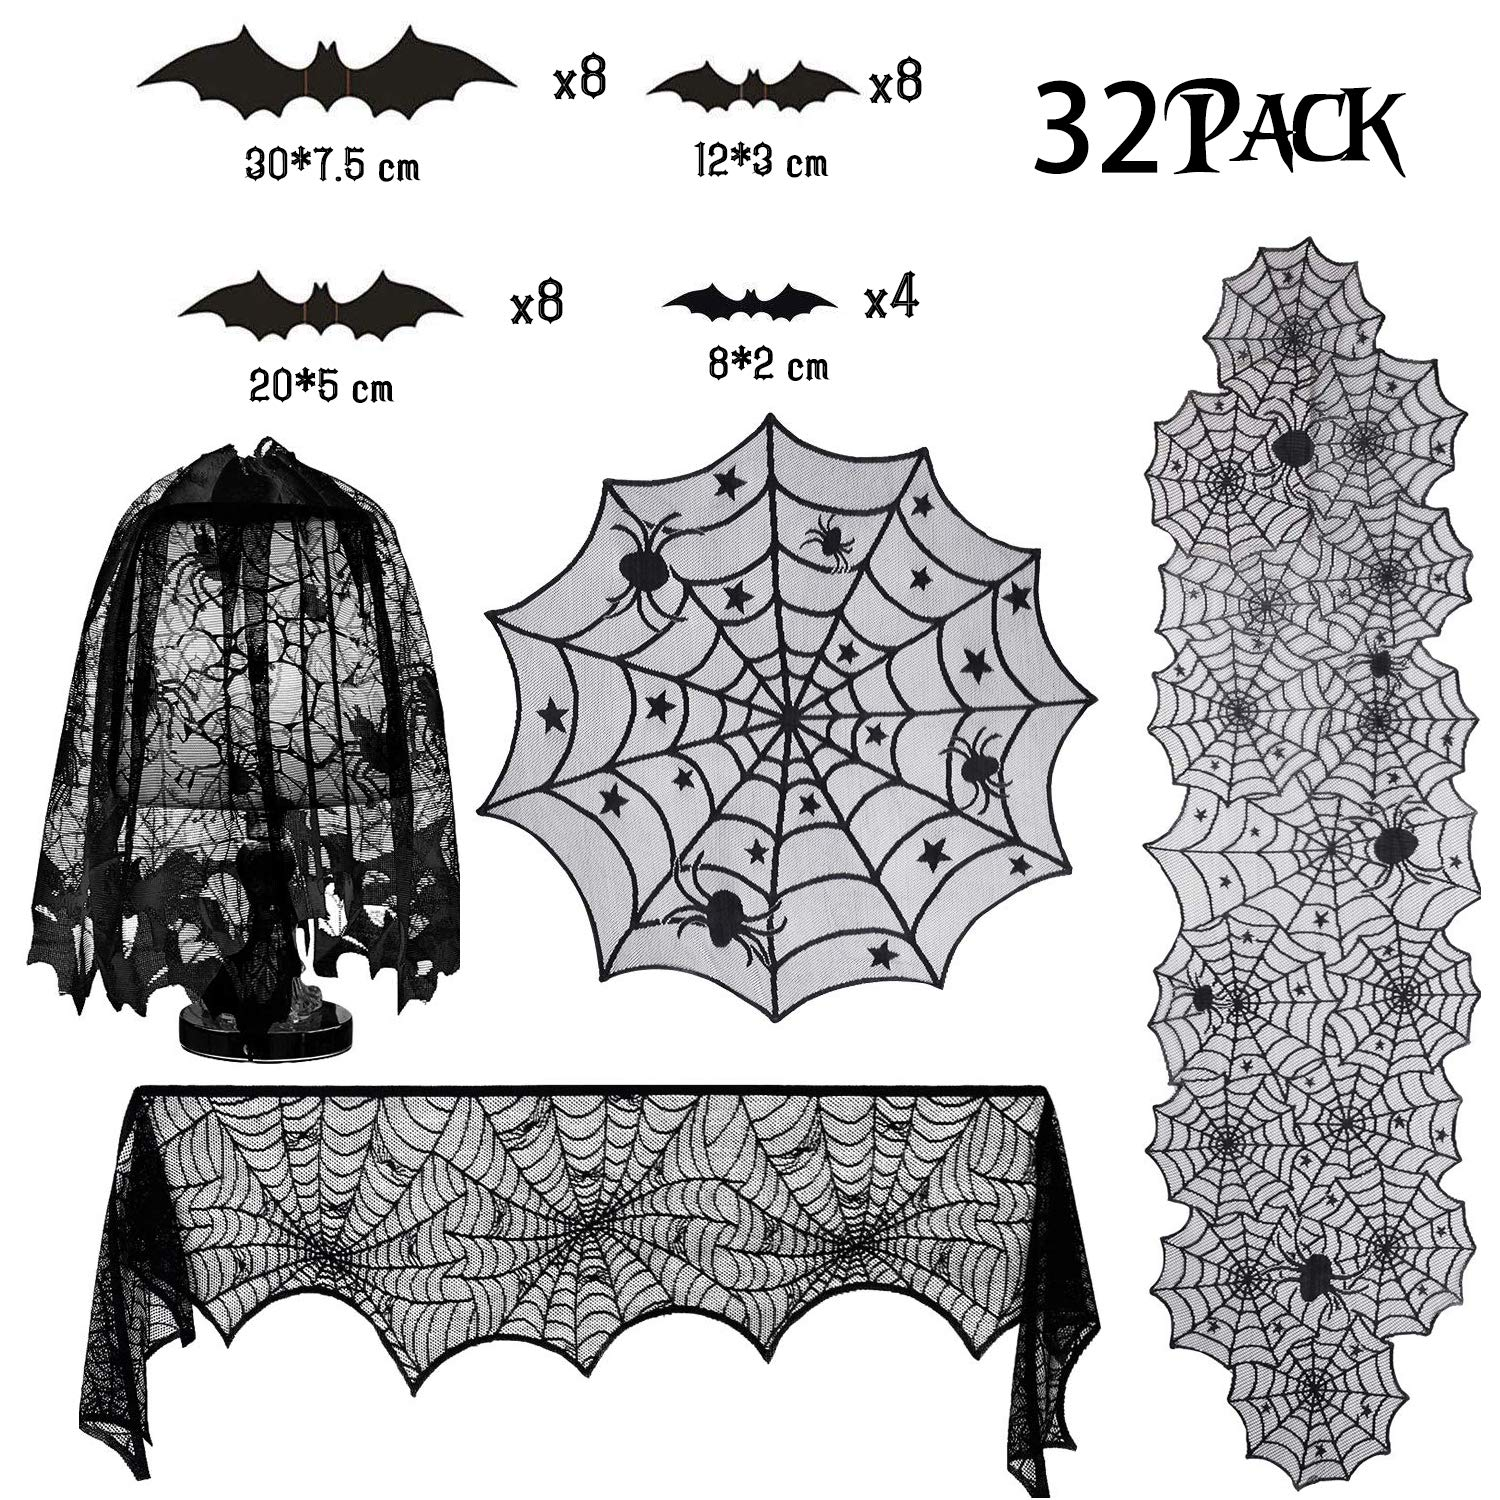 32-Pack Halloween Decorations Sets, Halloween Tablecloth Spooky Bat Spiderweb Lace Tablecloth, Round Lace Table Cover, Halloween Lamp Shades, Fireplace Scarf Cover and Halloween 3D Bats Wall Stickers